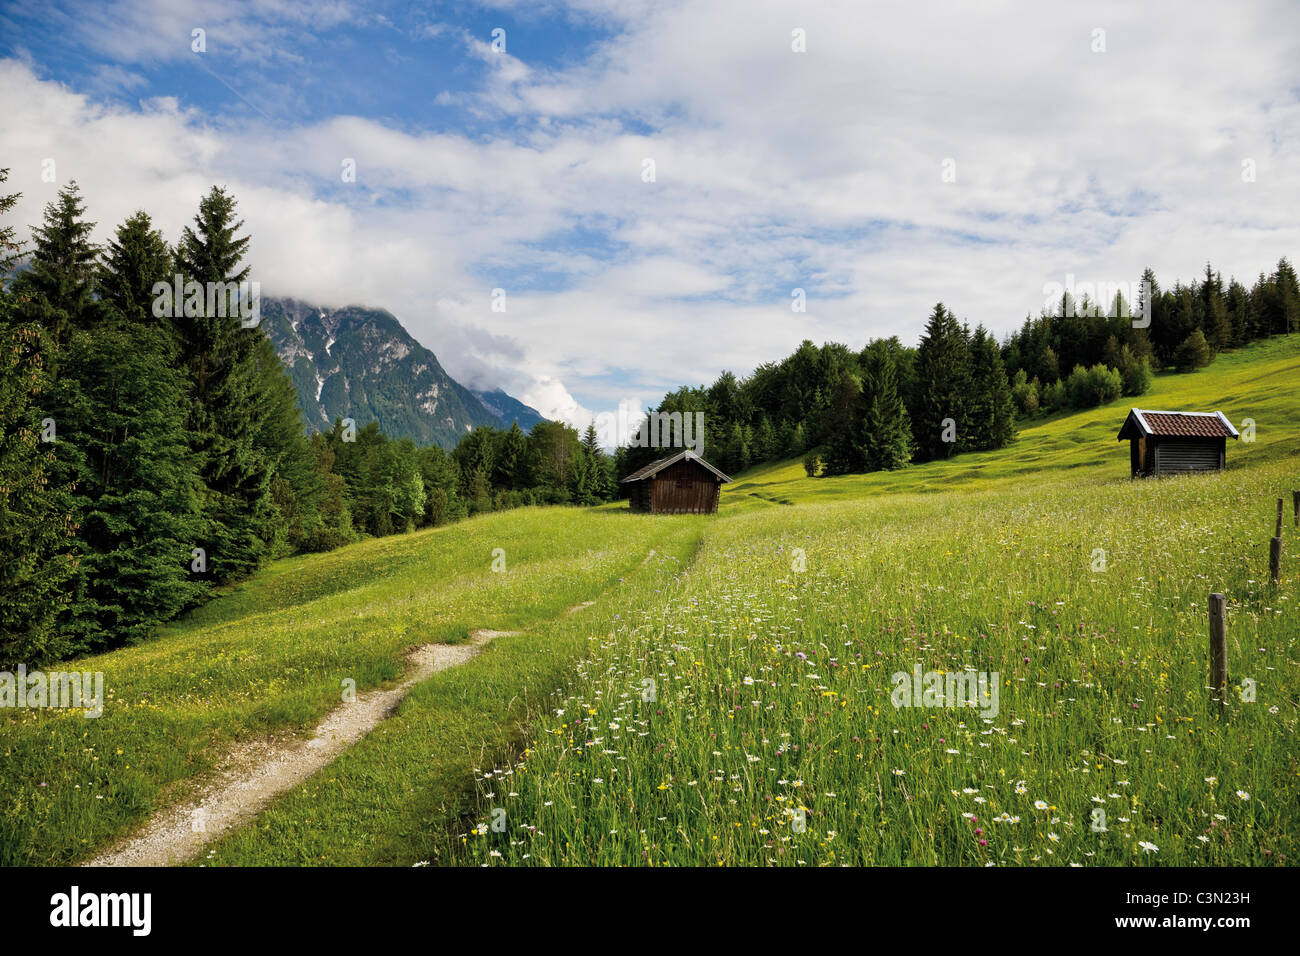 Germany, Bavaria, View of hump-meadow with karwendel mountains in background - Stock Image